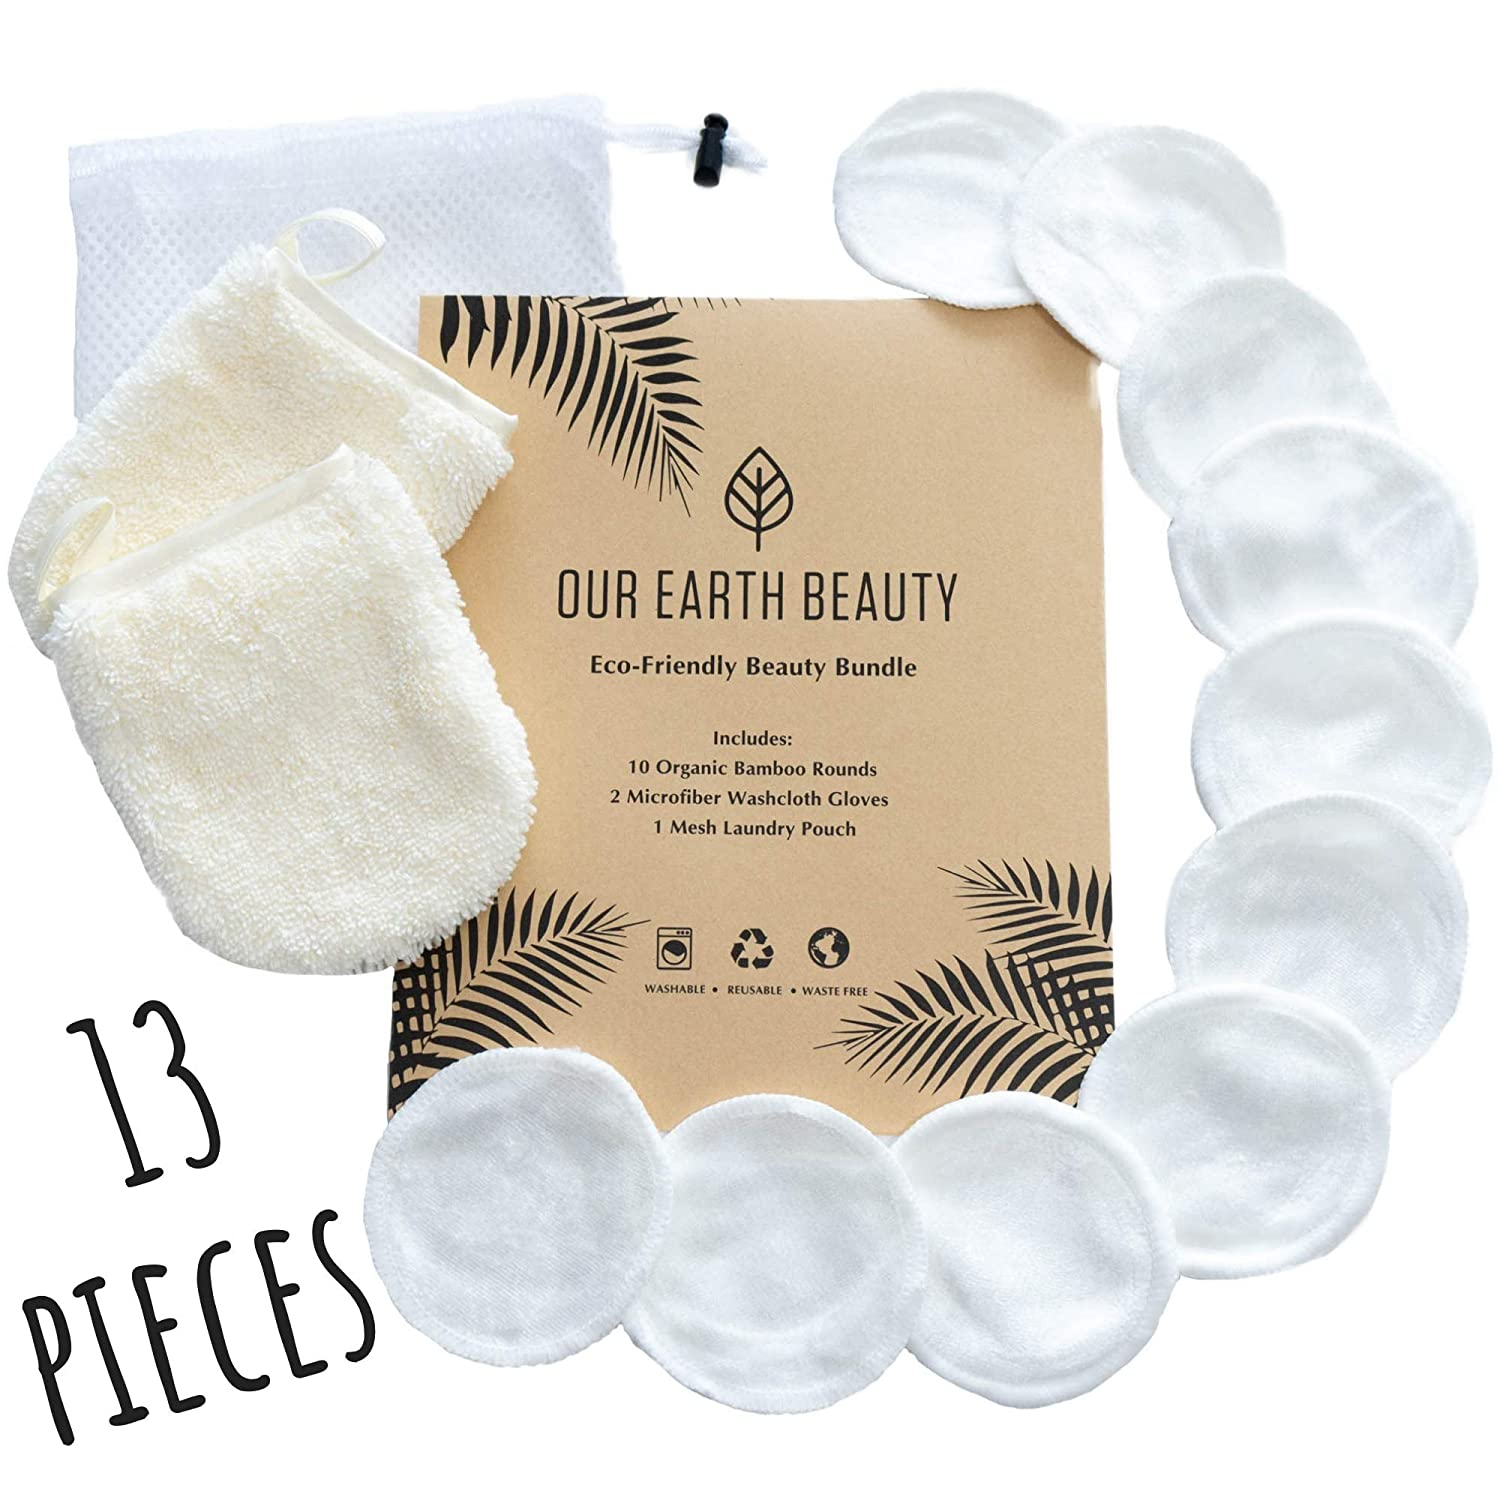 Reusable Makeup Remover Pads and Microfiber Face Cleansing Gloves   12 Pack with Laundry Bag   100  Organic Bamboo Velvet   Eco-friendly   Waste Free   Luxury